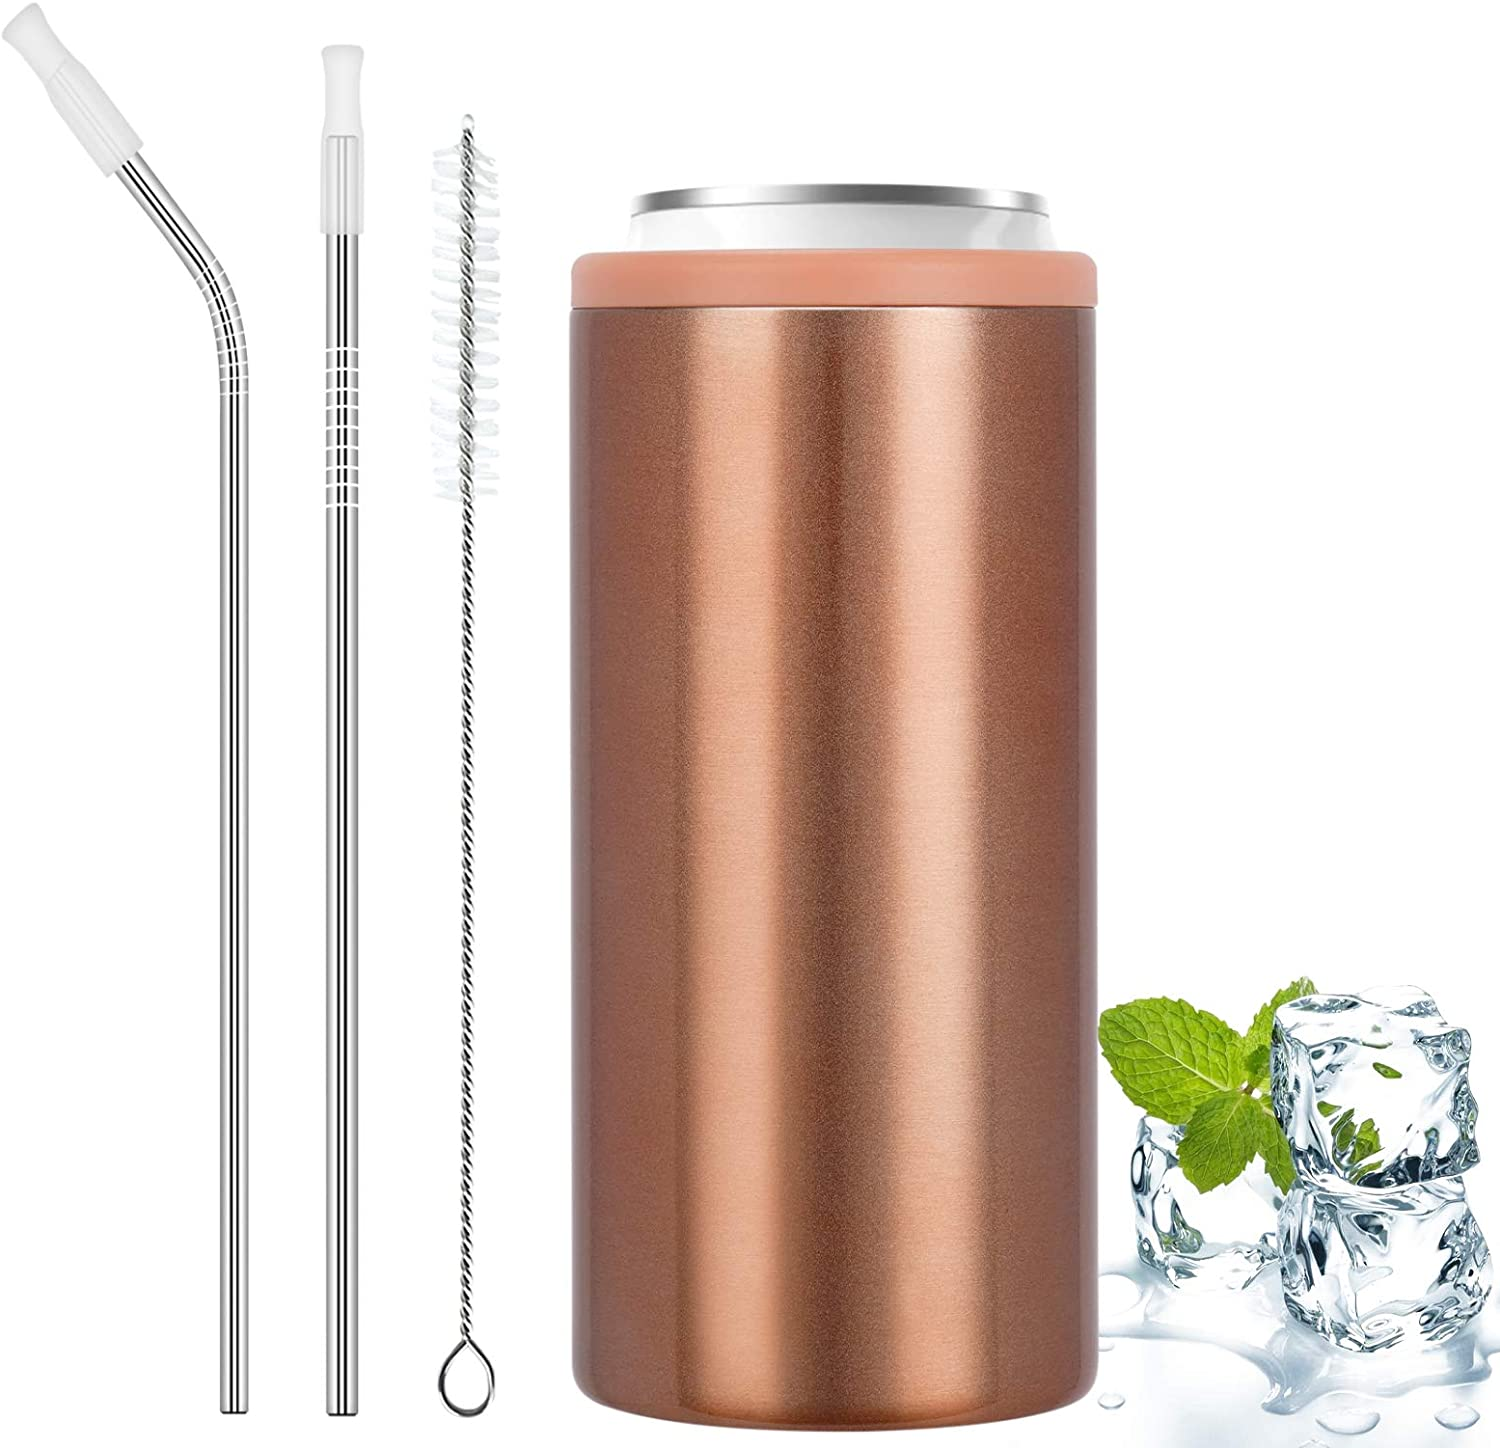 Slim Can Cooler with Straw, Insulated Skinny Can Coozie for 12 Oz Slim Beer Cans, Stainless Steel Double-walled Skinny Can Coozie for Beer, Soda, Cold Beverage, Energy Drinks (Glitter Rose Gold)